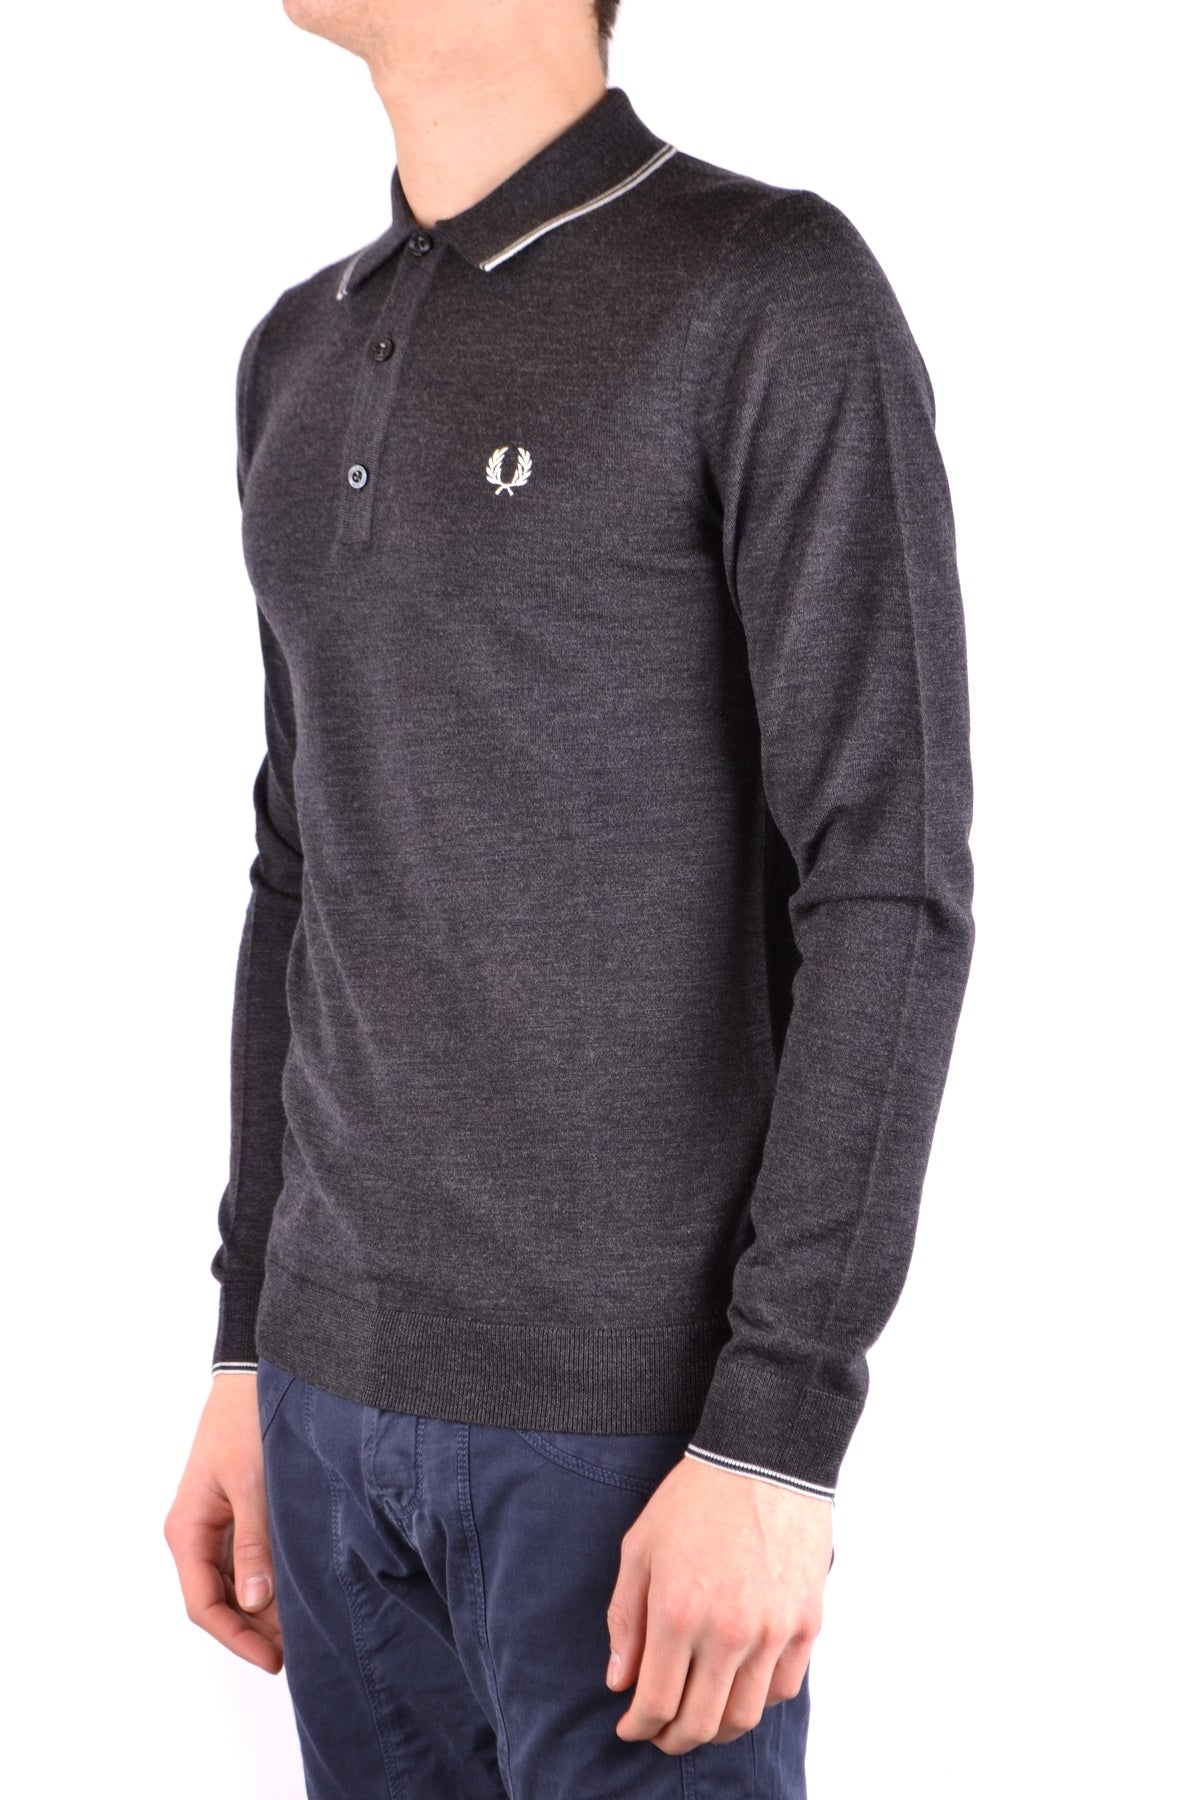 Polo Fred Perry-Polos - MAN-Product Details Terms: New With LabelYear: 2017Main Color: GraySeason: Fall / WinterMade In: ChinaSize: IntGender: ManClothing Type: PoleComposition: Merino Wool 100%-Keyomi-Sook